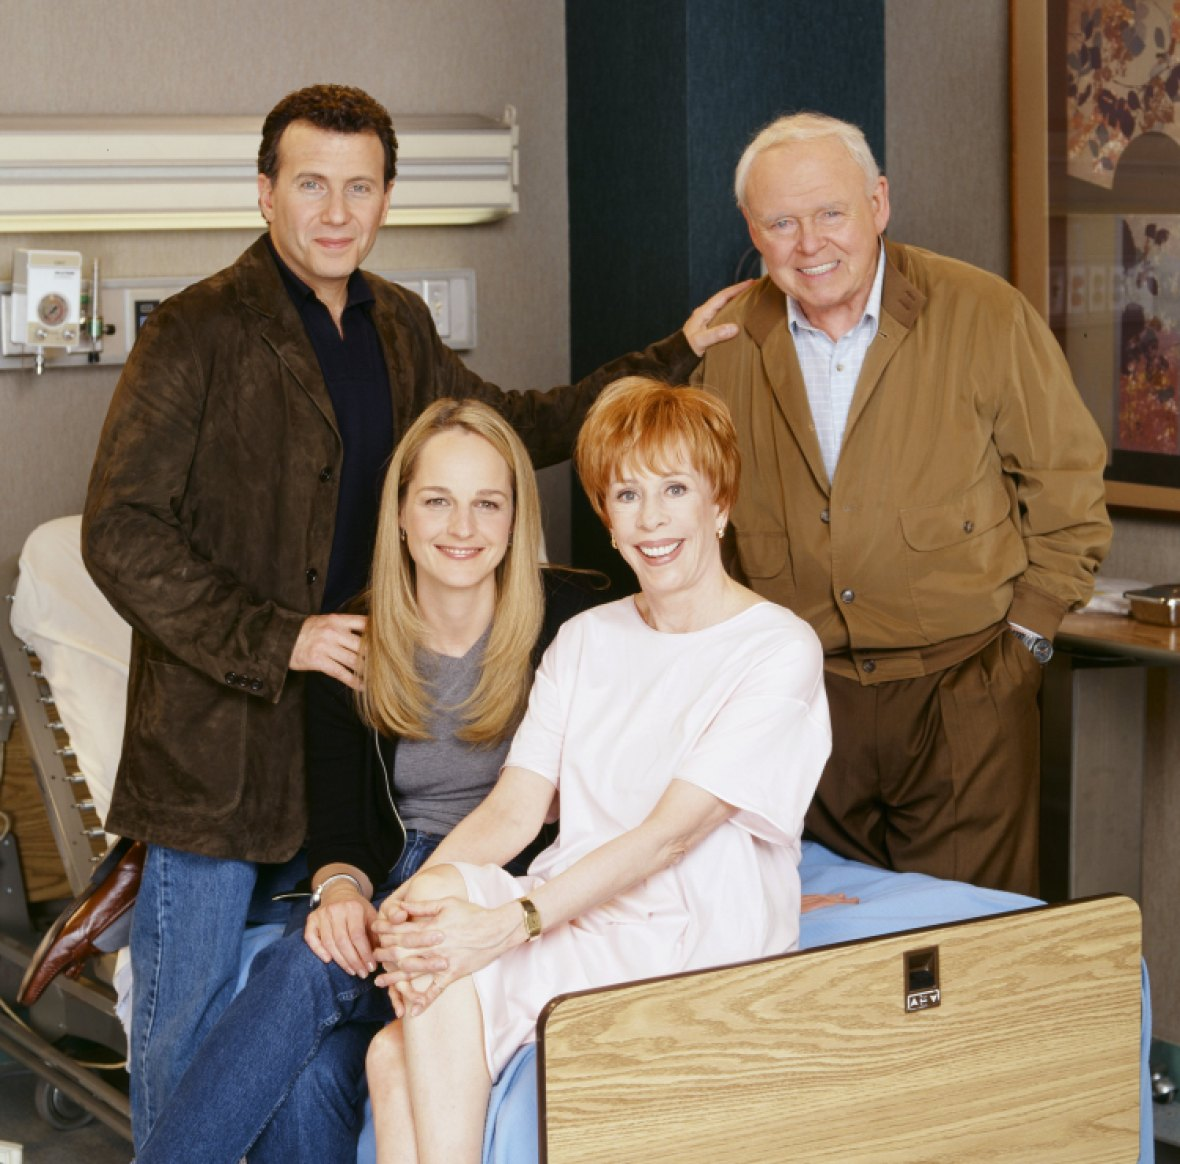 mad about you cast getty